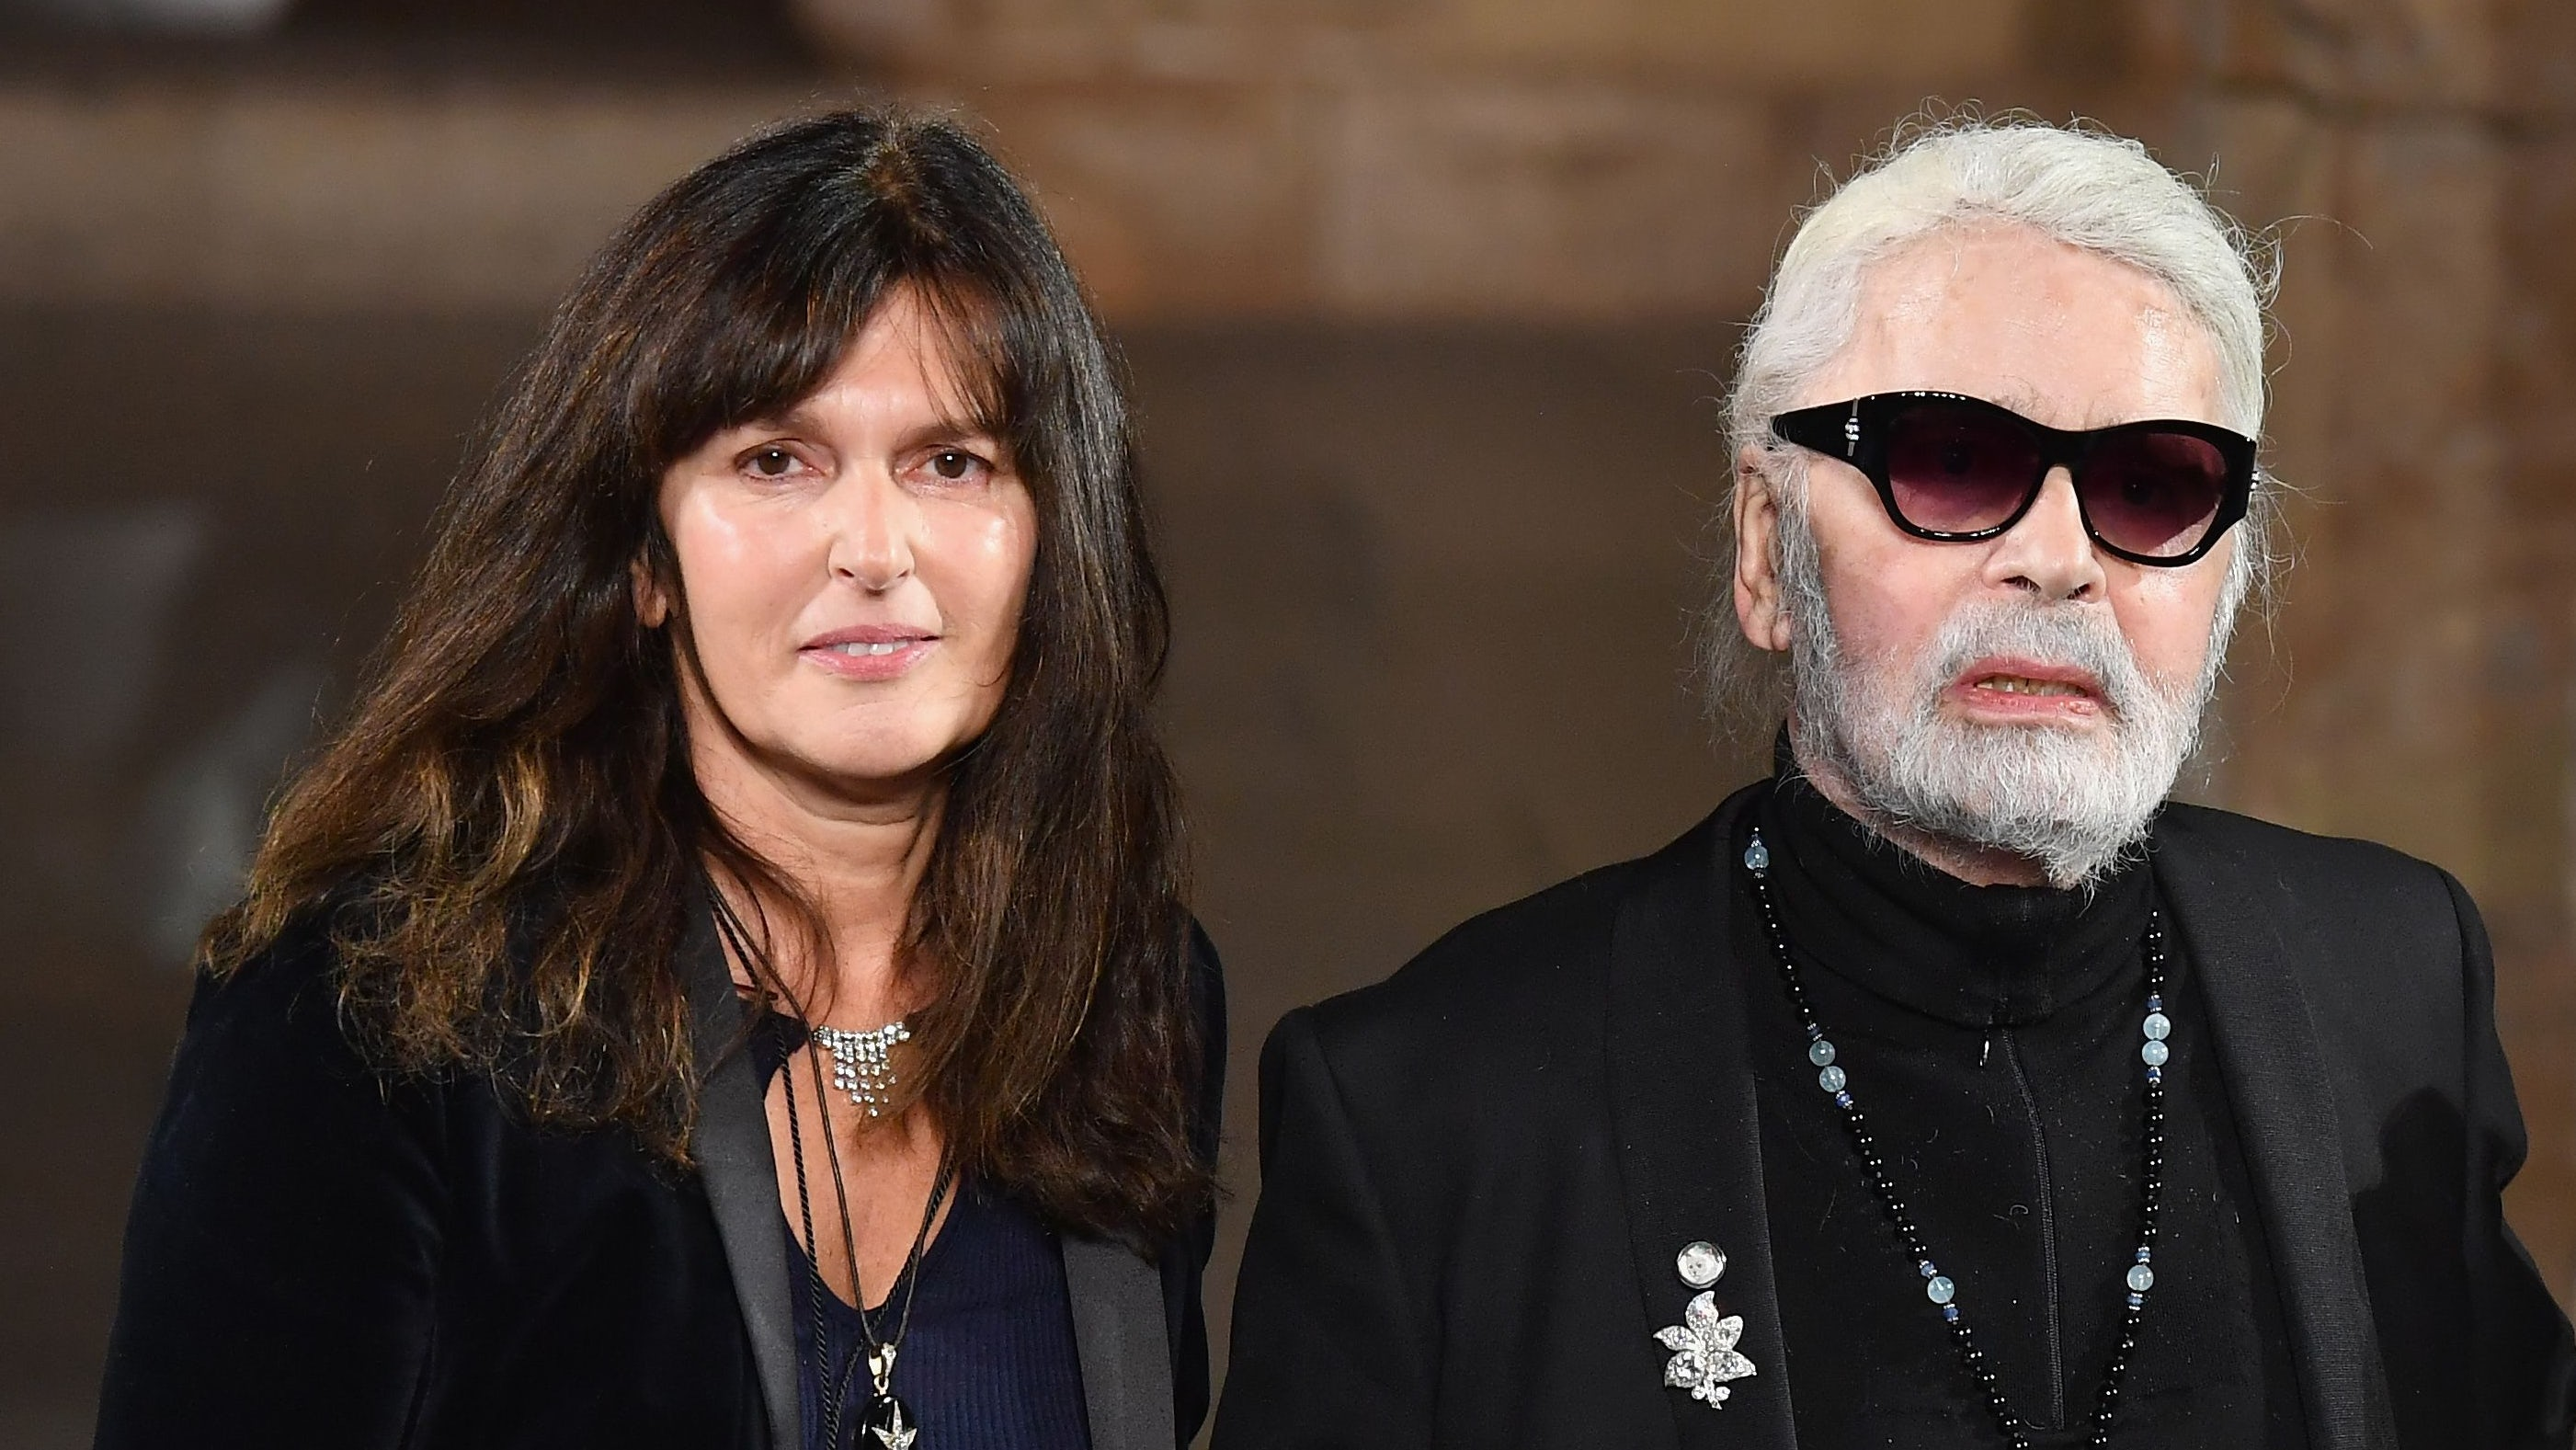 Virginie Viard and Karl Lagerfeld during the Chanel Metiers D'Art 2018/19 Show in December 2018 | Source: Getty Images